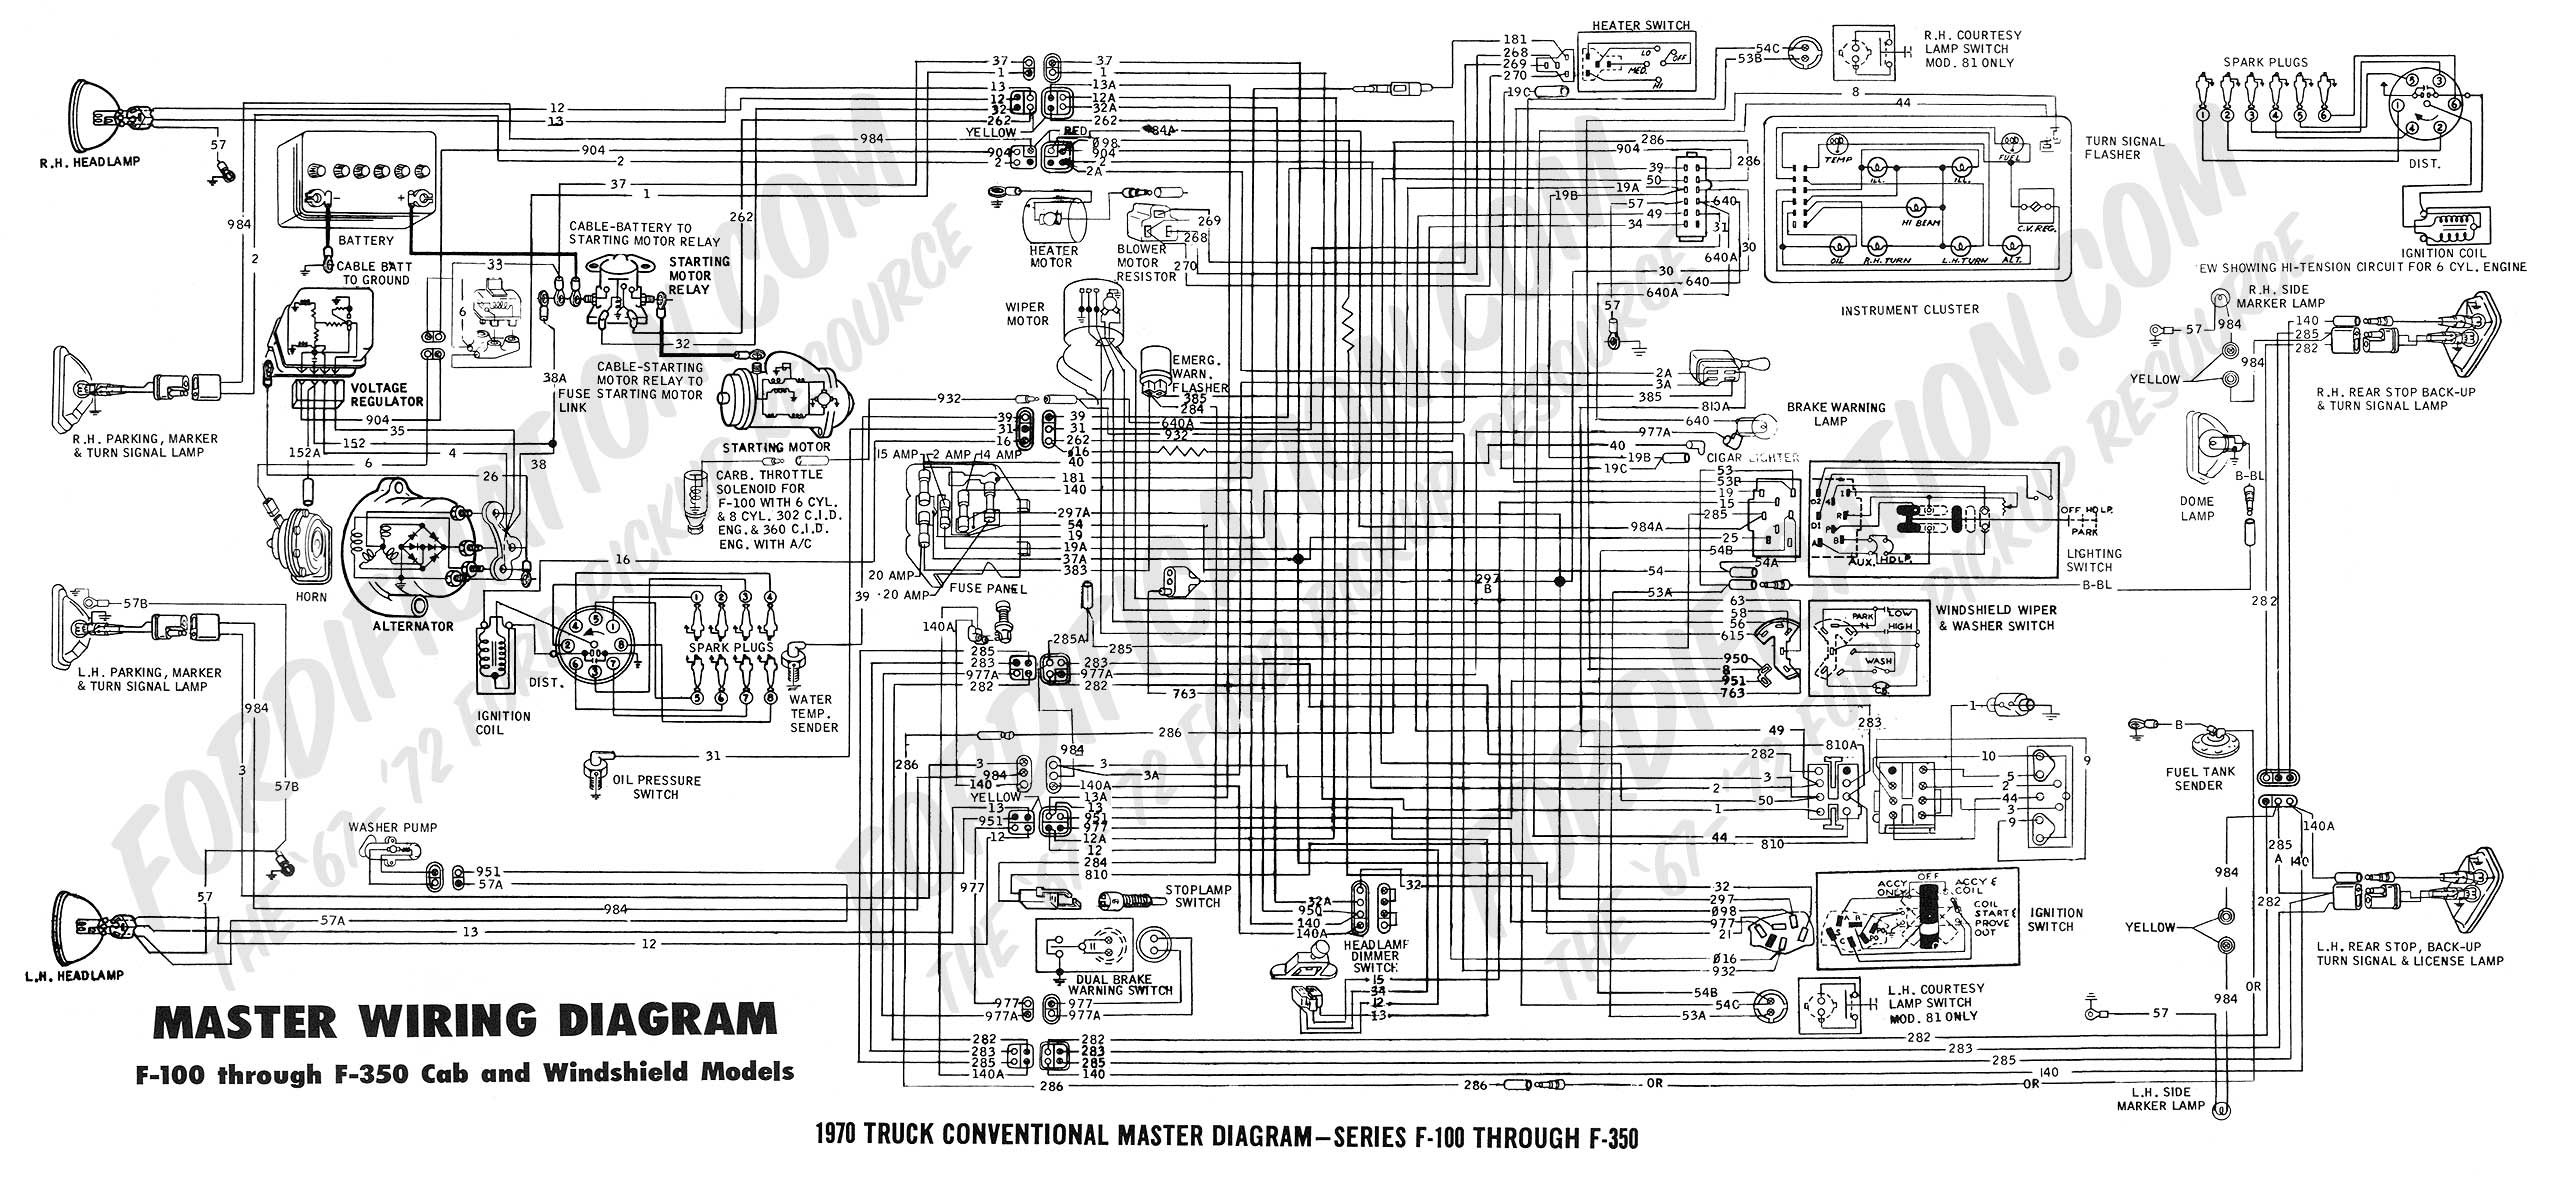 1999 F350 Wiring Diagram | Repair Manual  Ford F Wiring Diagram on